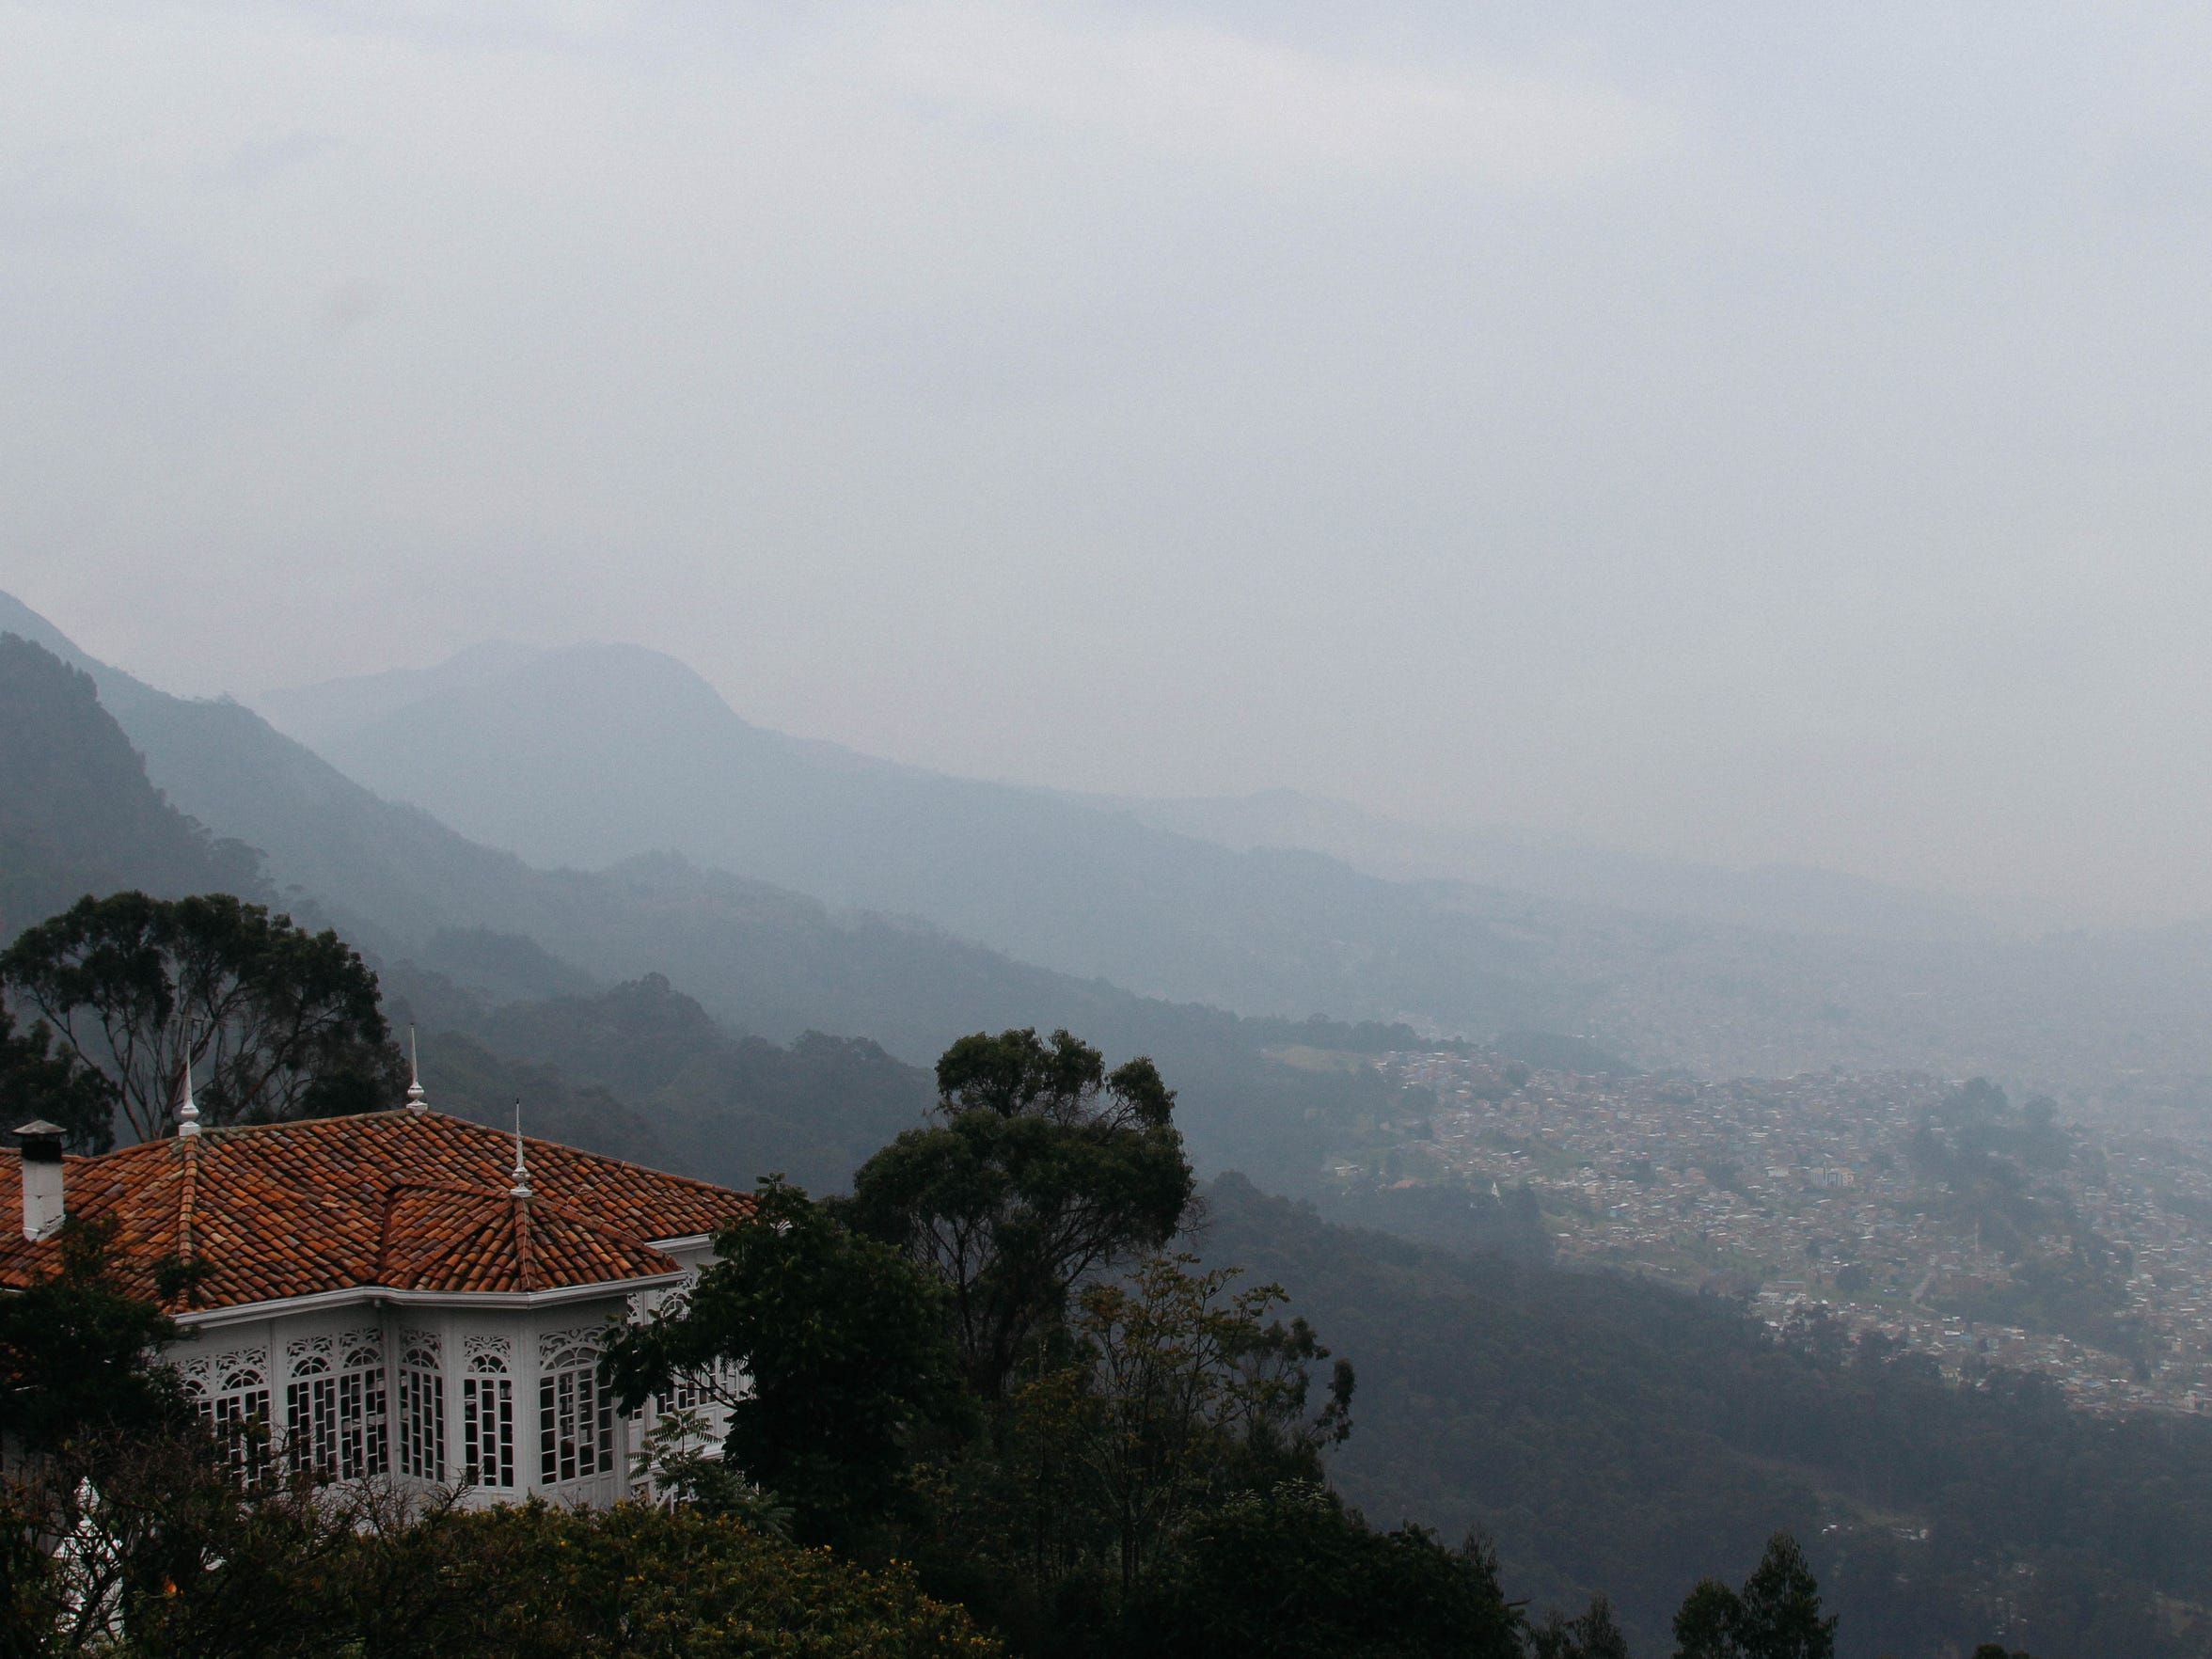 The top of Monseratte provides visitors with sweeping